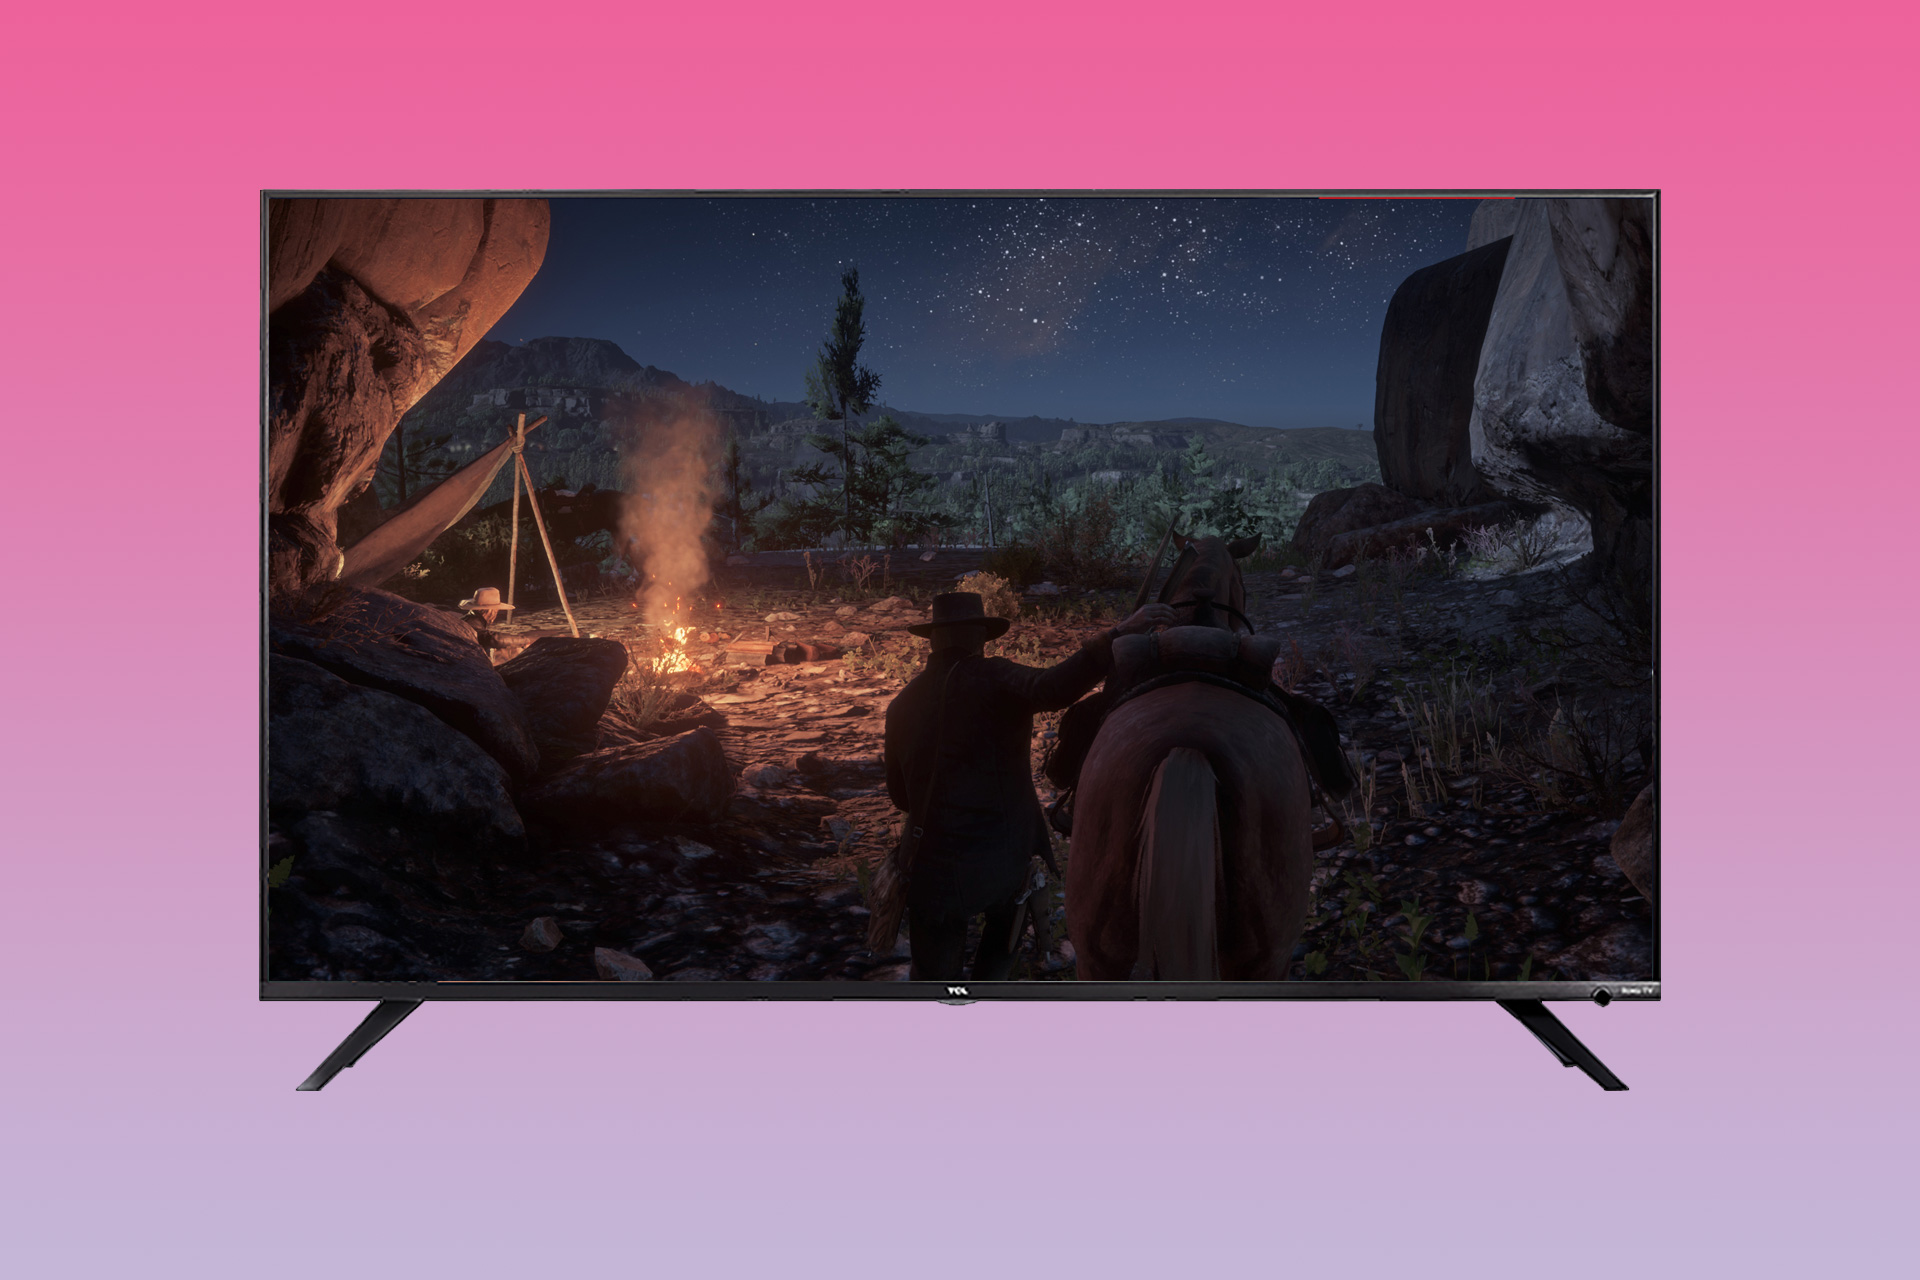 TCL's excellent 65-inch 4K TV is on sale for an all-time low price